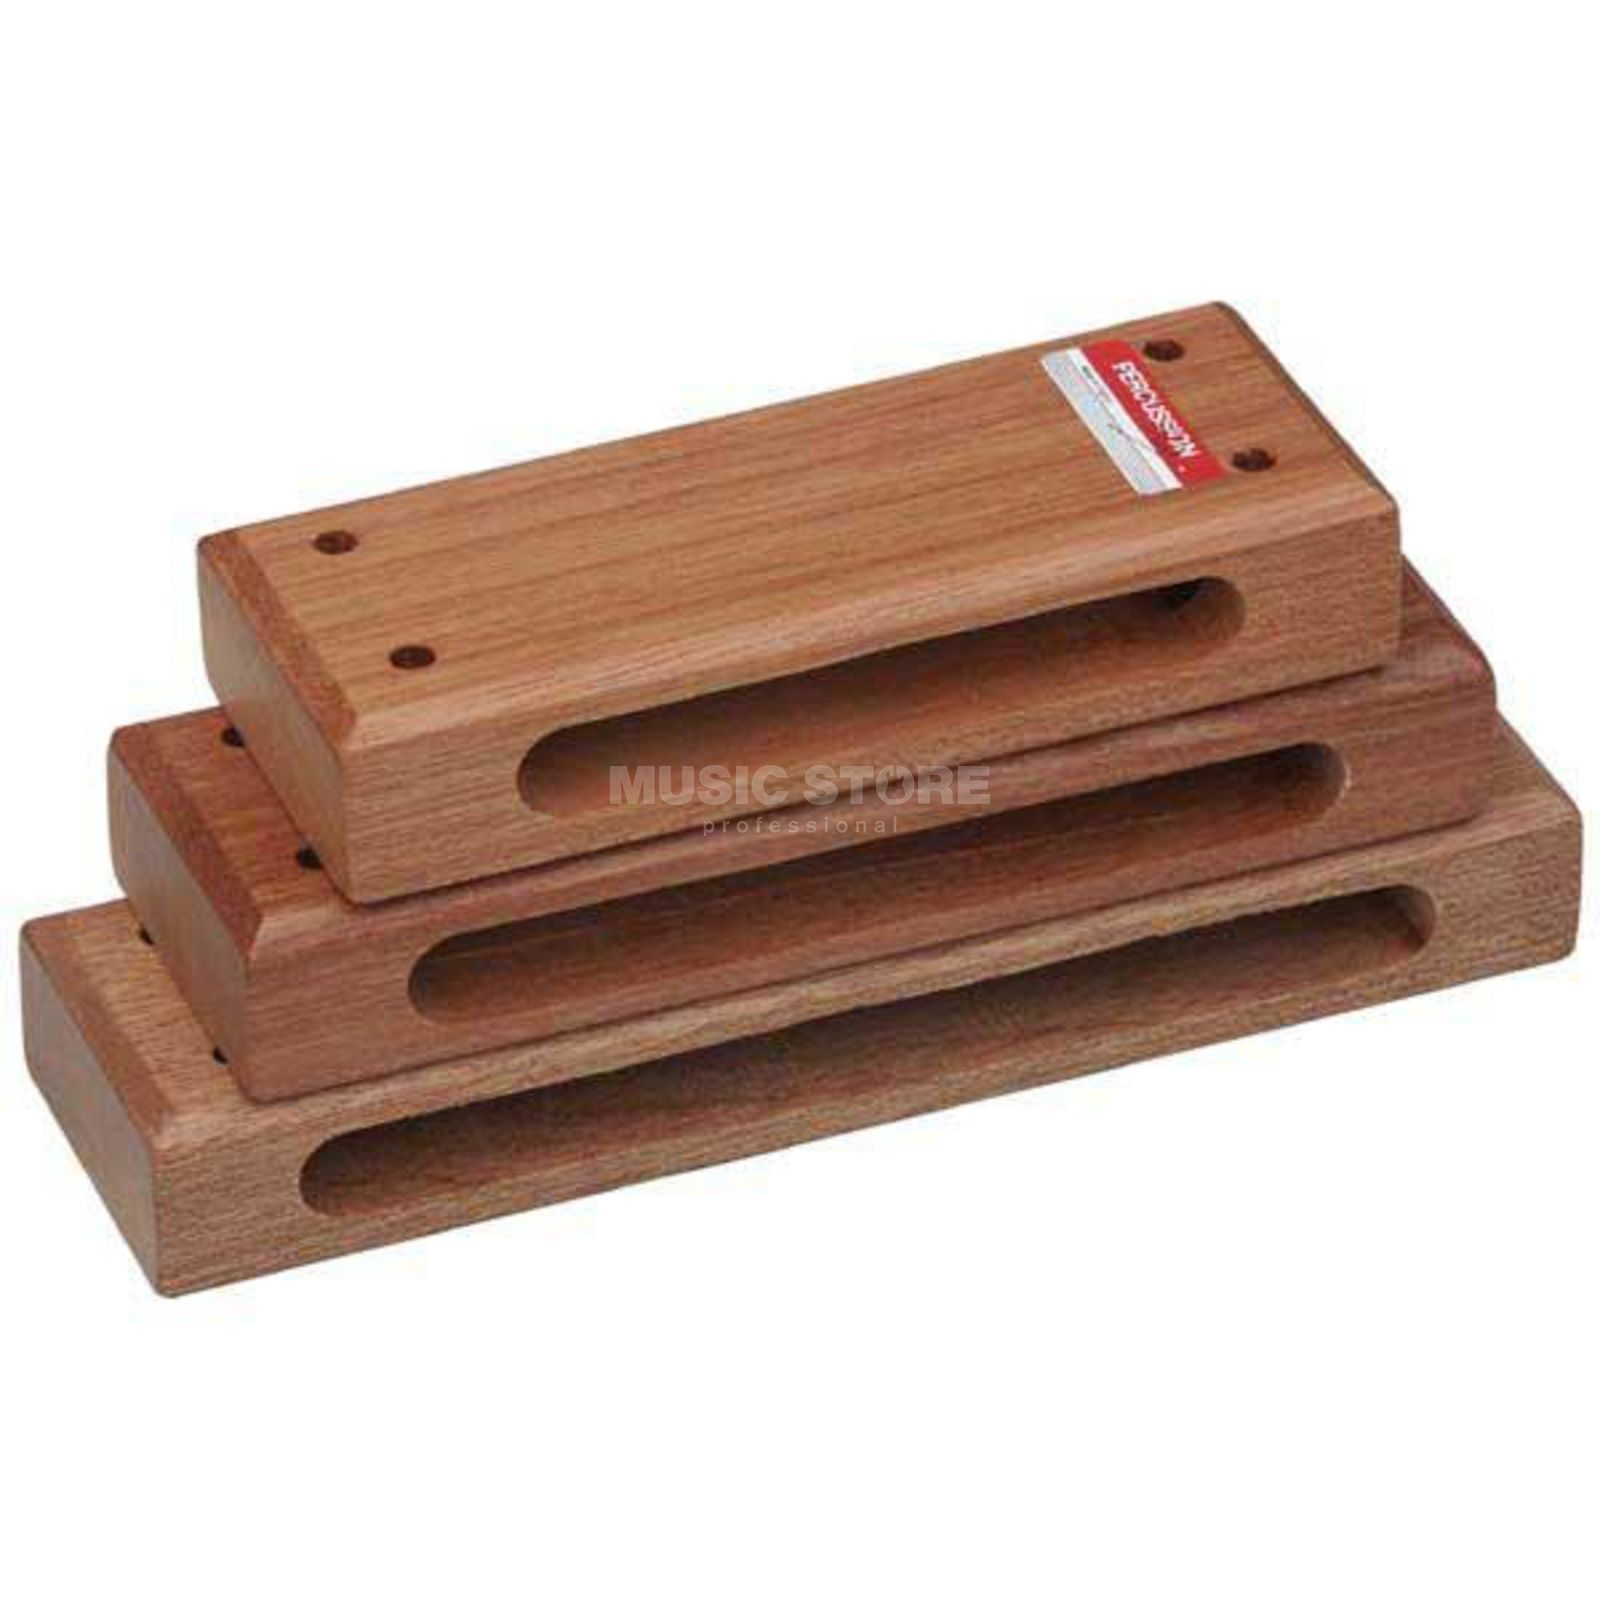 Percussion Plus PP263 Wood Blocks, 3 Stück Produktbild